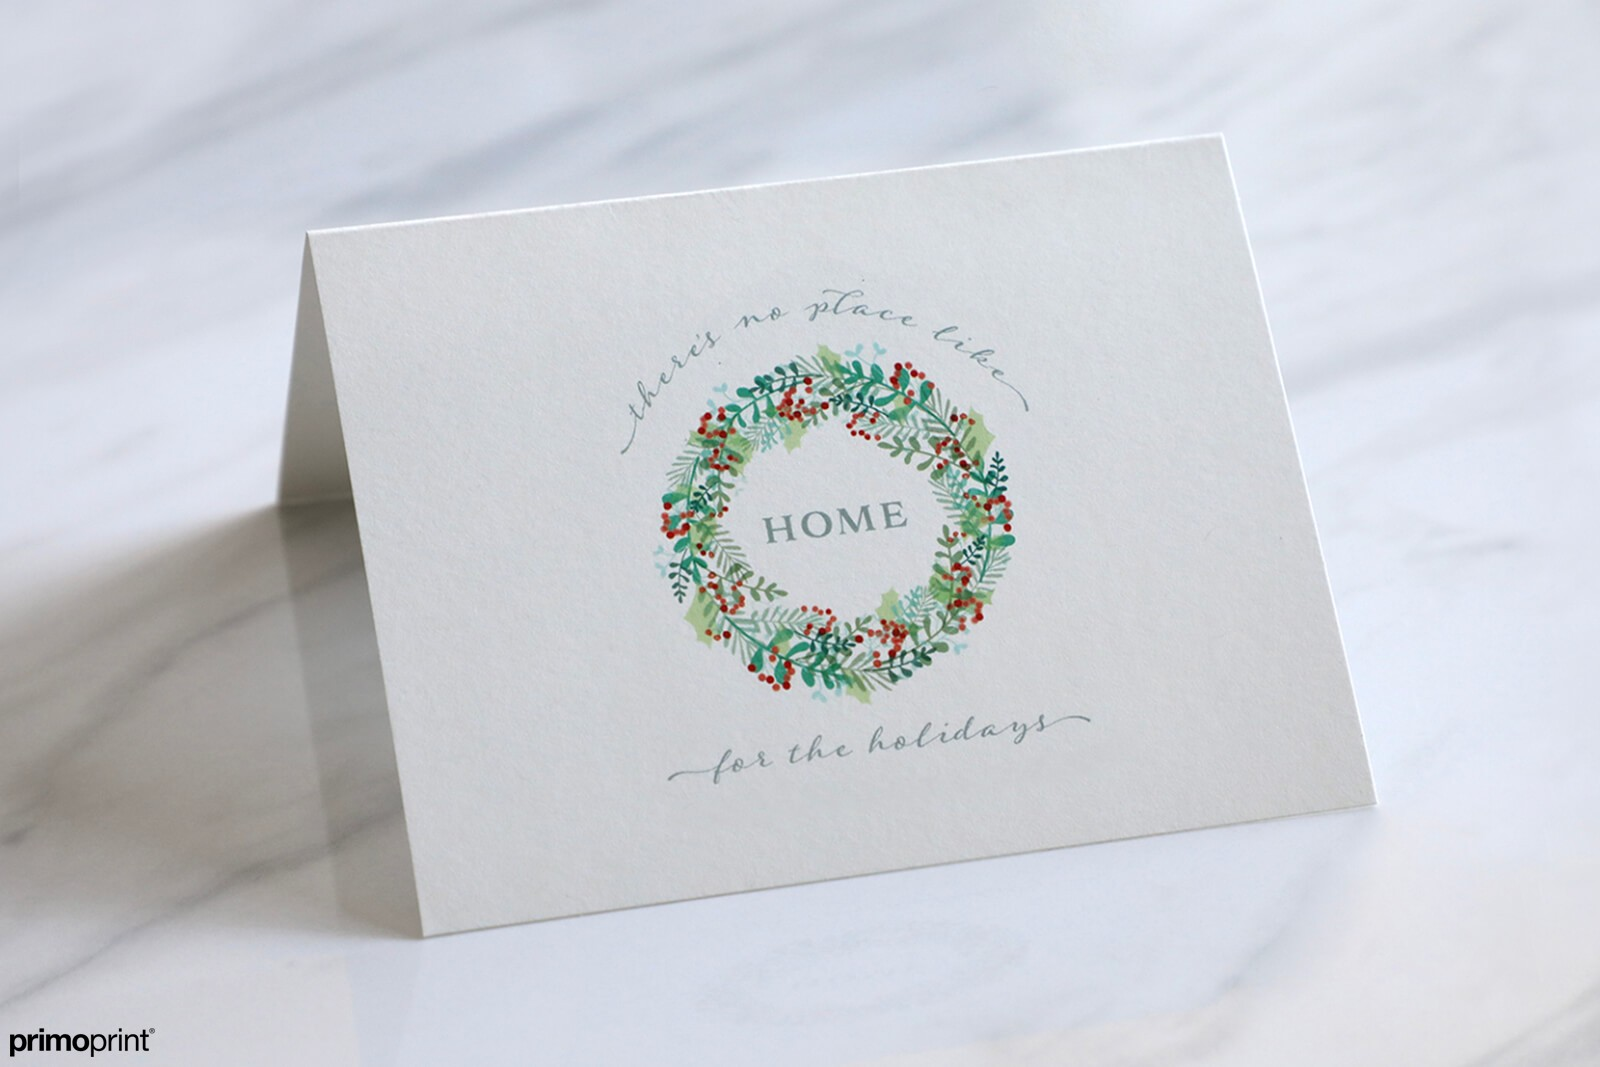 The card stock provides a natural and cream color with a smooth finish making them excellent for thank you cards, holiday cards, birthday cards and so much more.